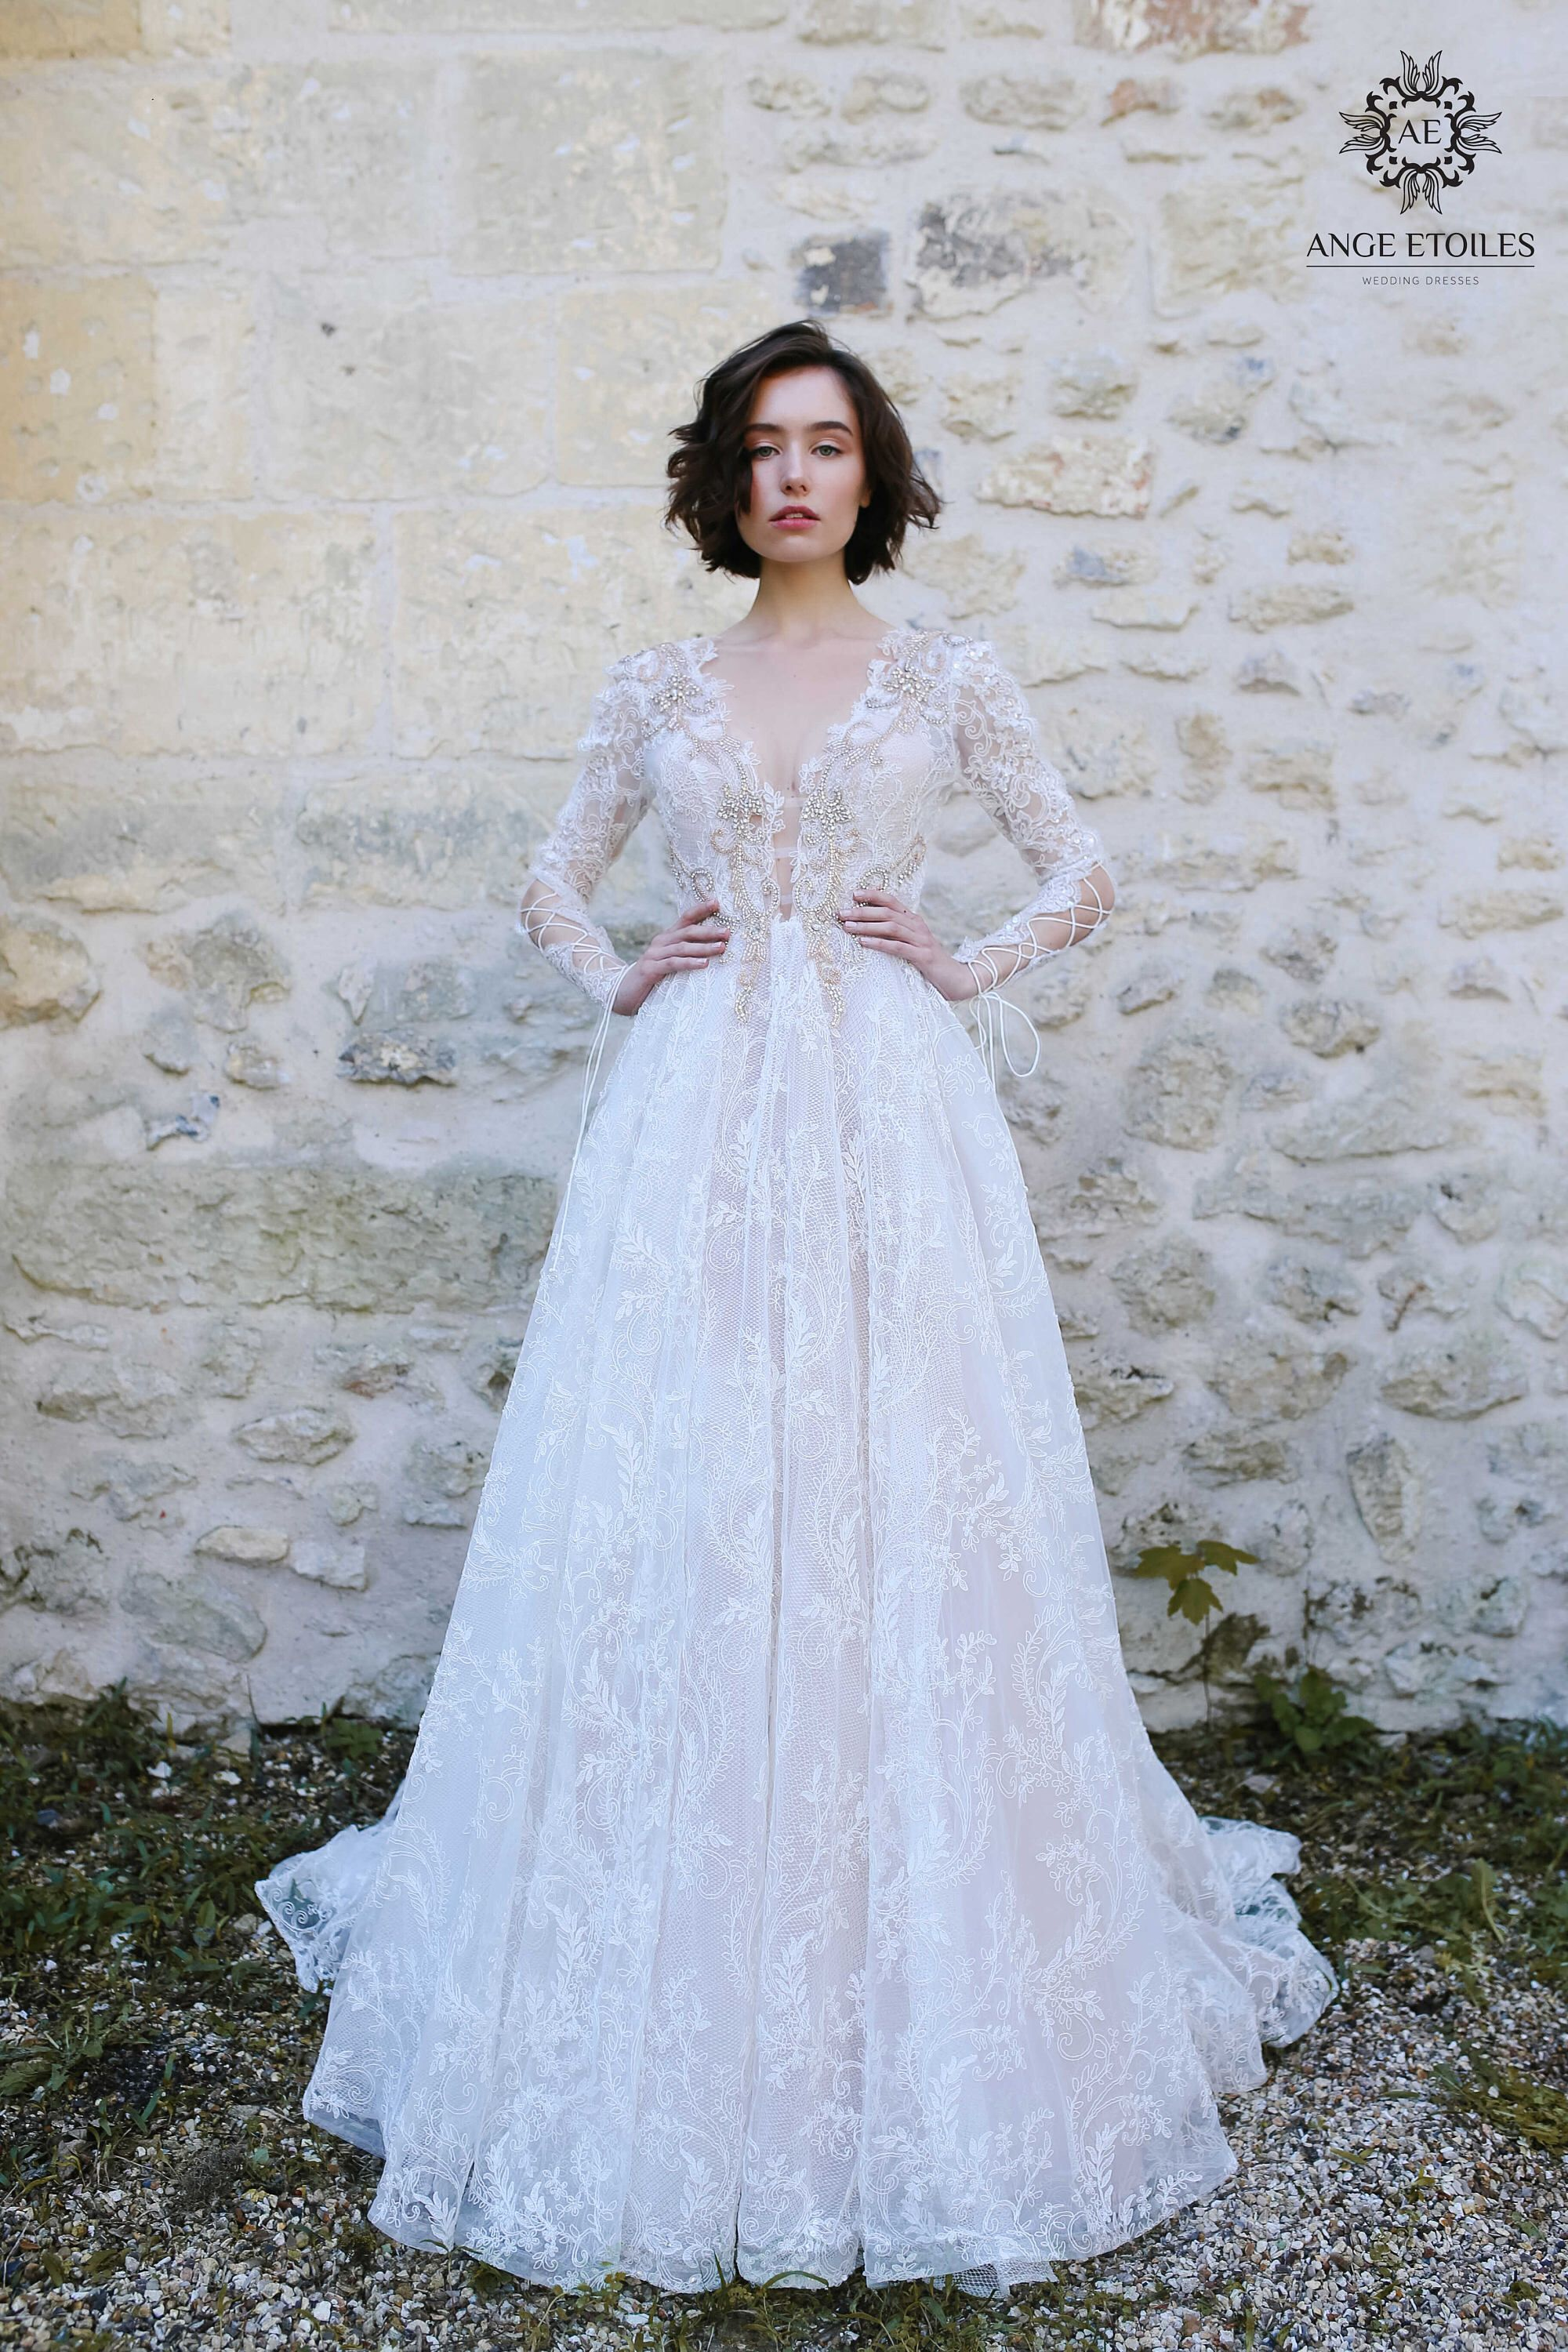 Wedding dress olivia long sleeve wedding dress boho wedding dress